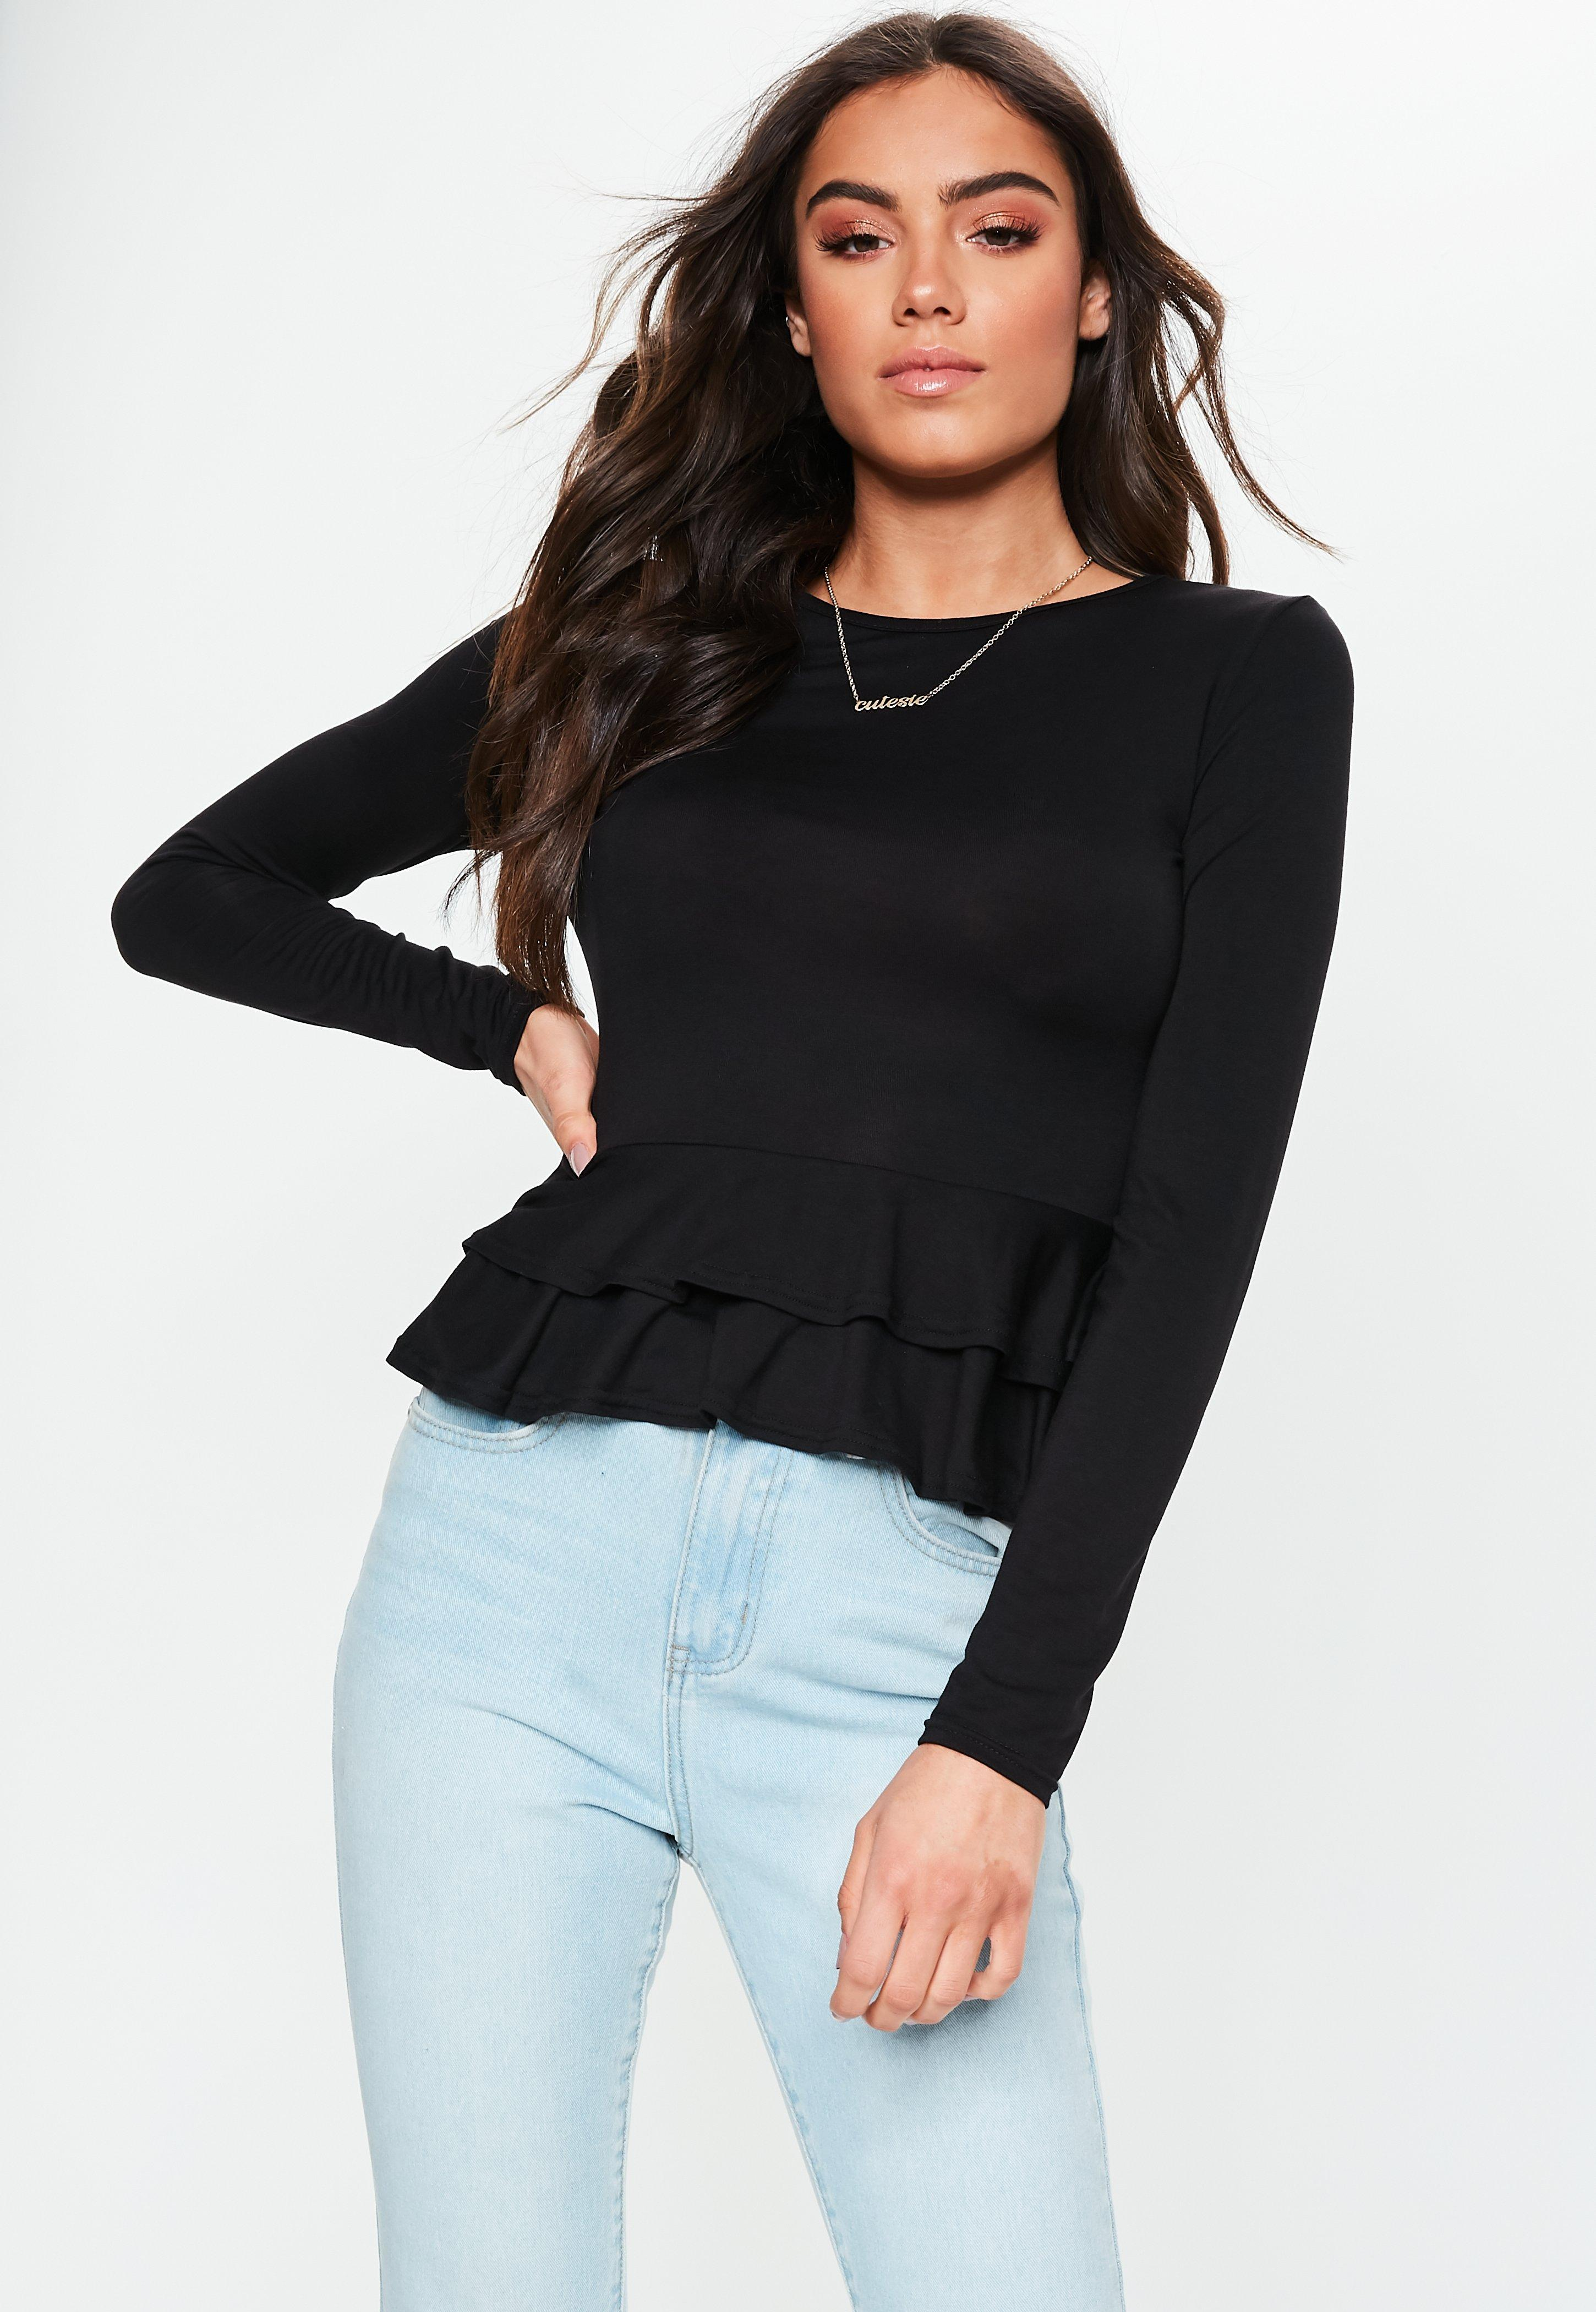 a1671f33 Blouses | Women's Floral, Chiffon & Satin Blouses - Missguided